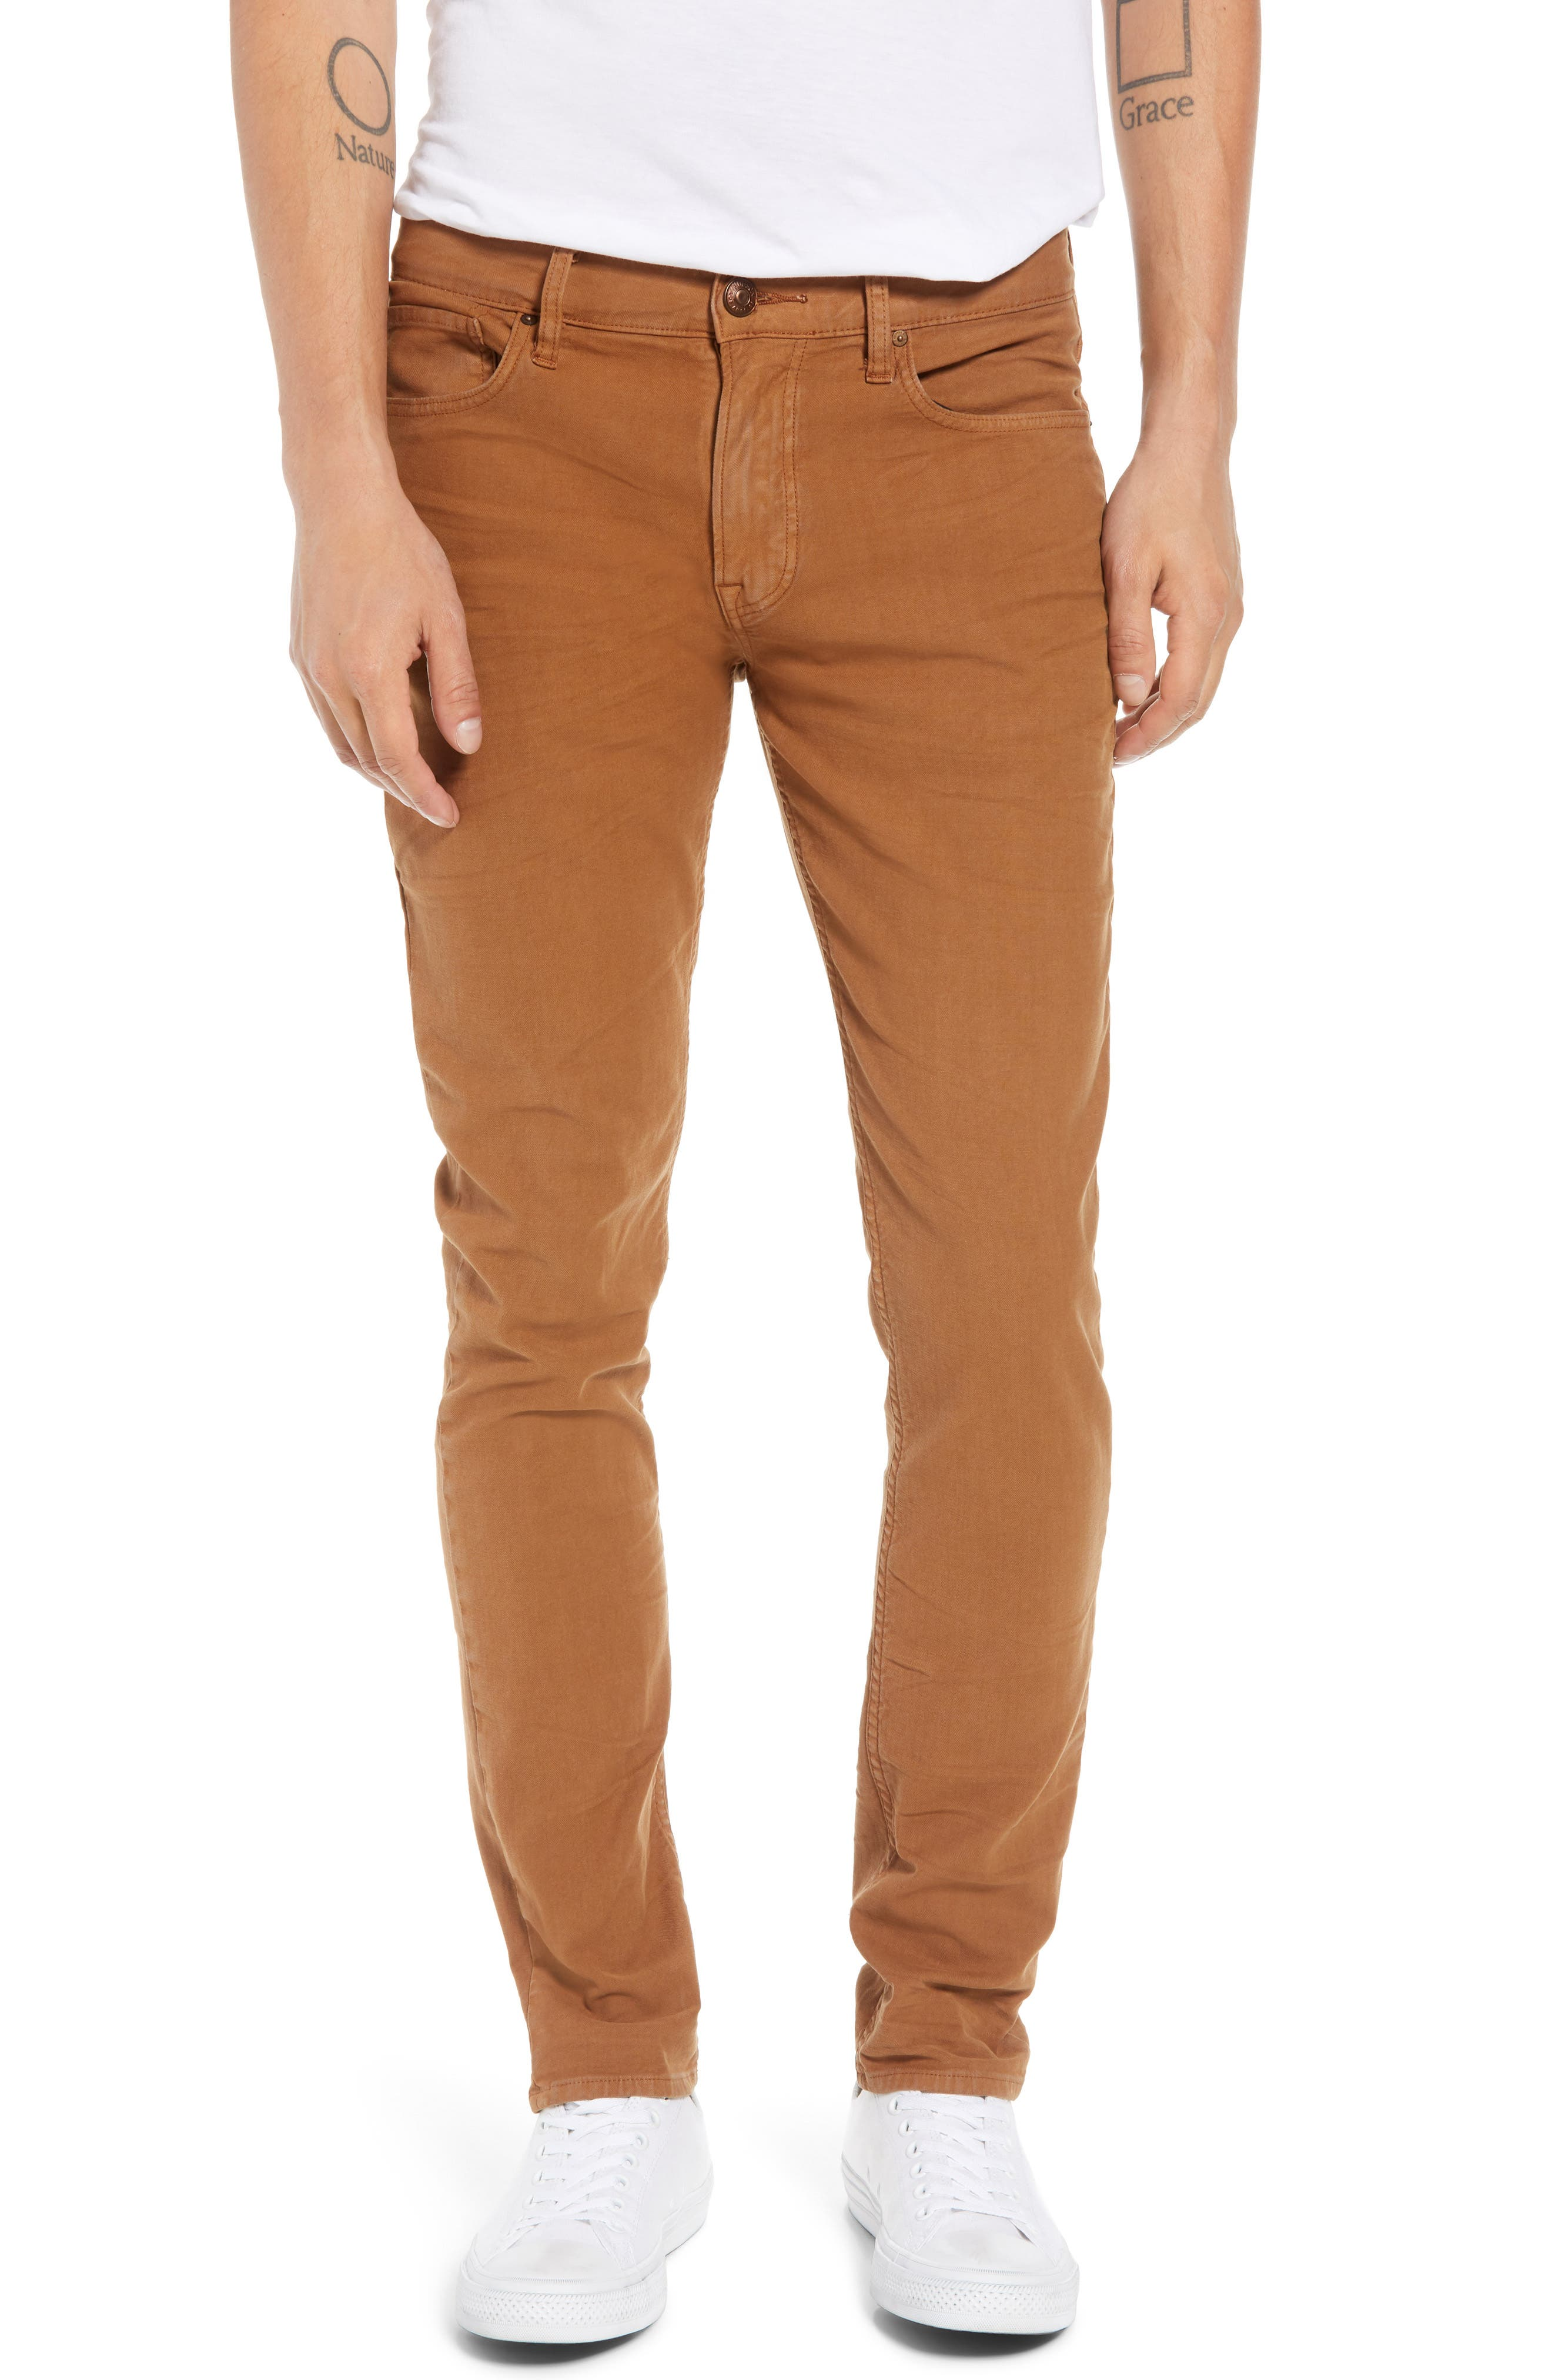 Axl Skinny Fit Jeans,                             Main thumbnail 1, color,                             SIENNA